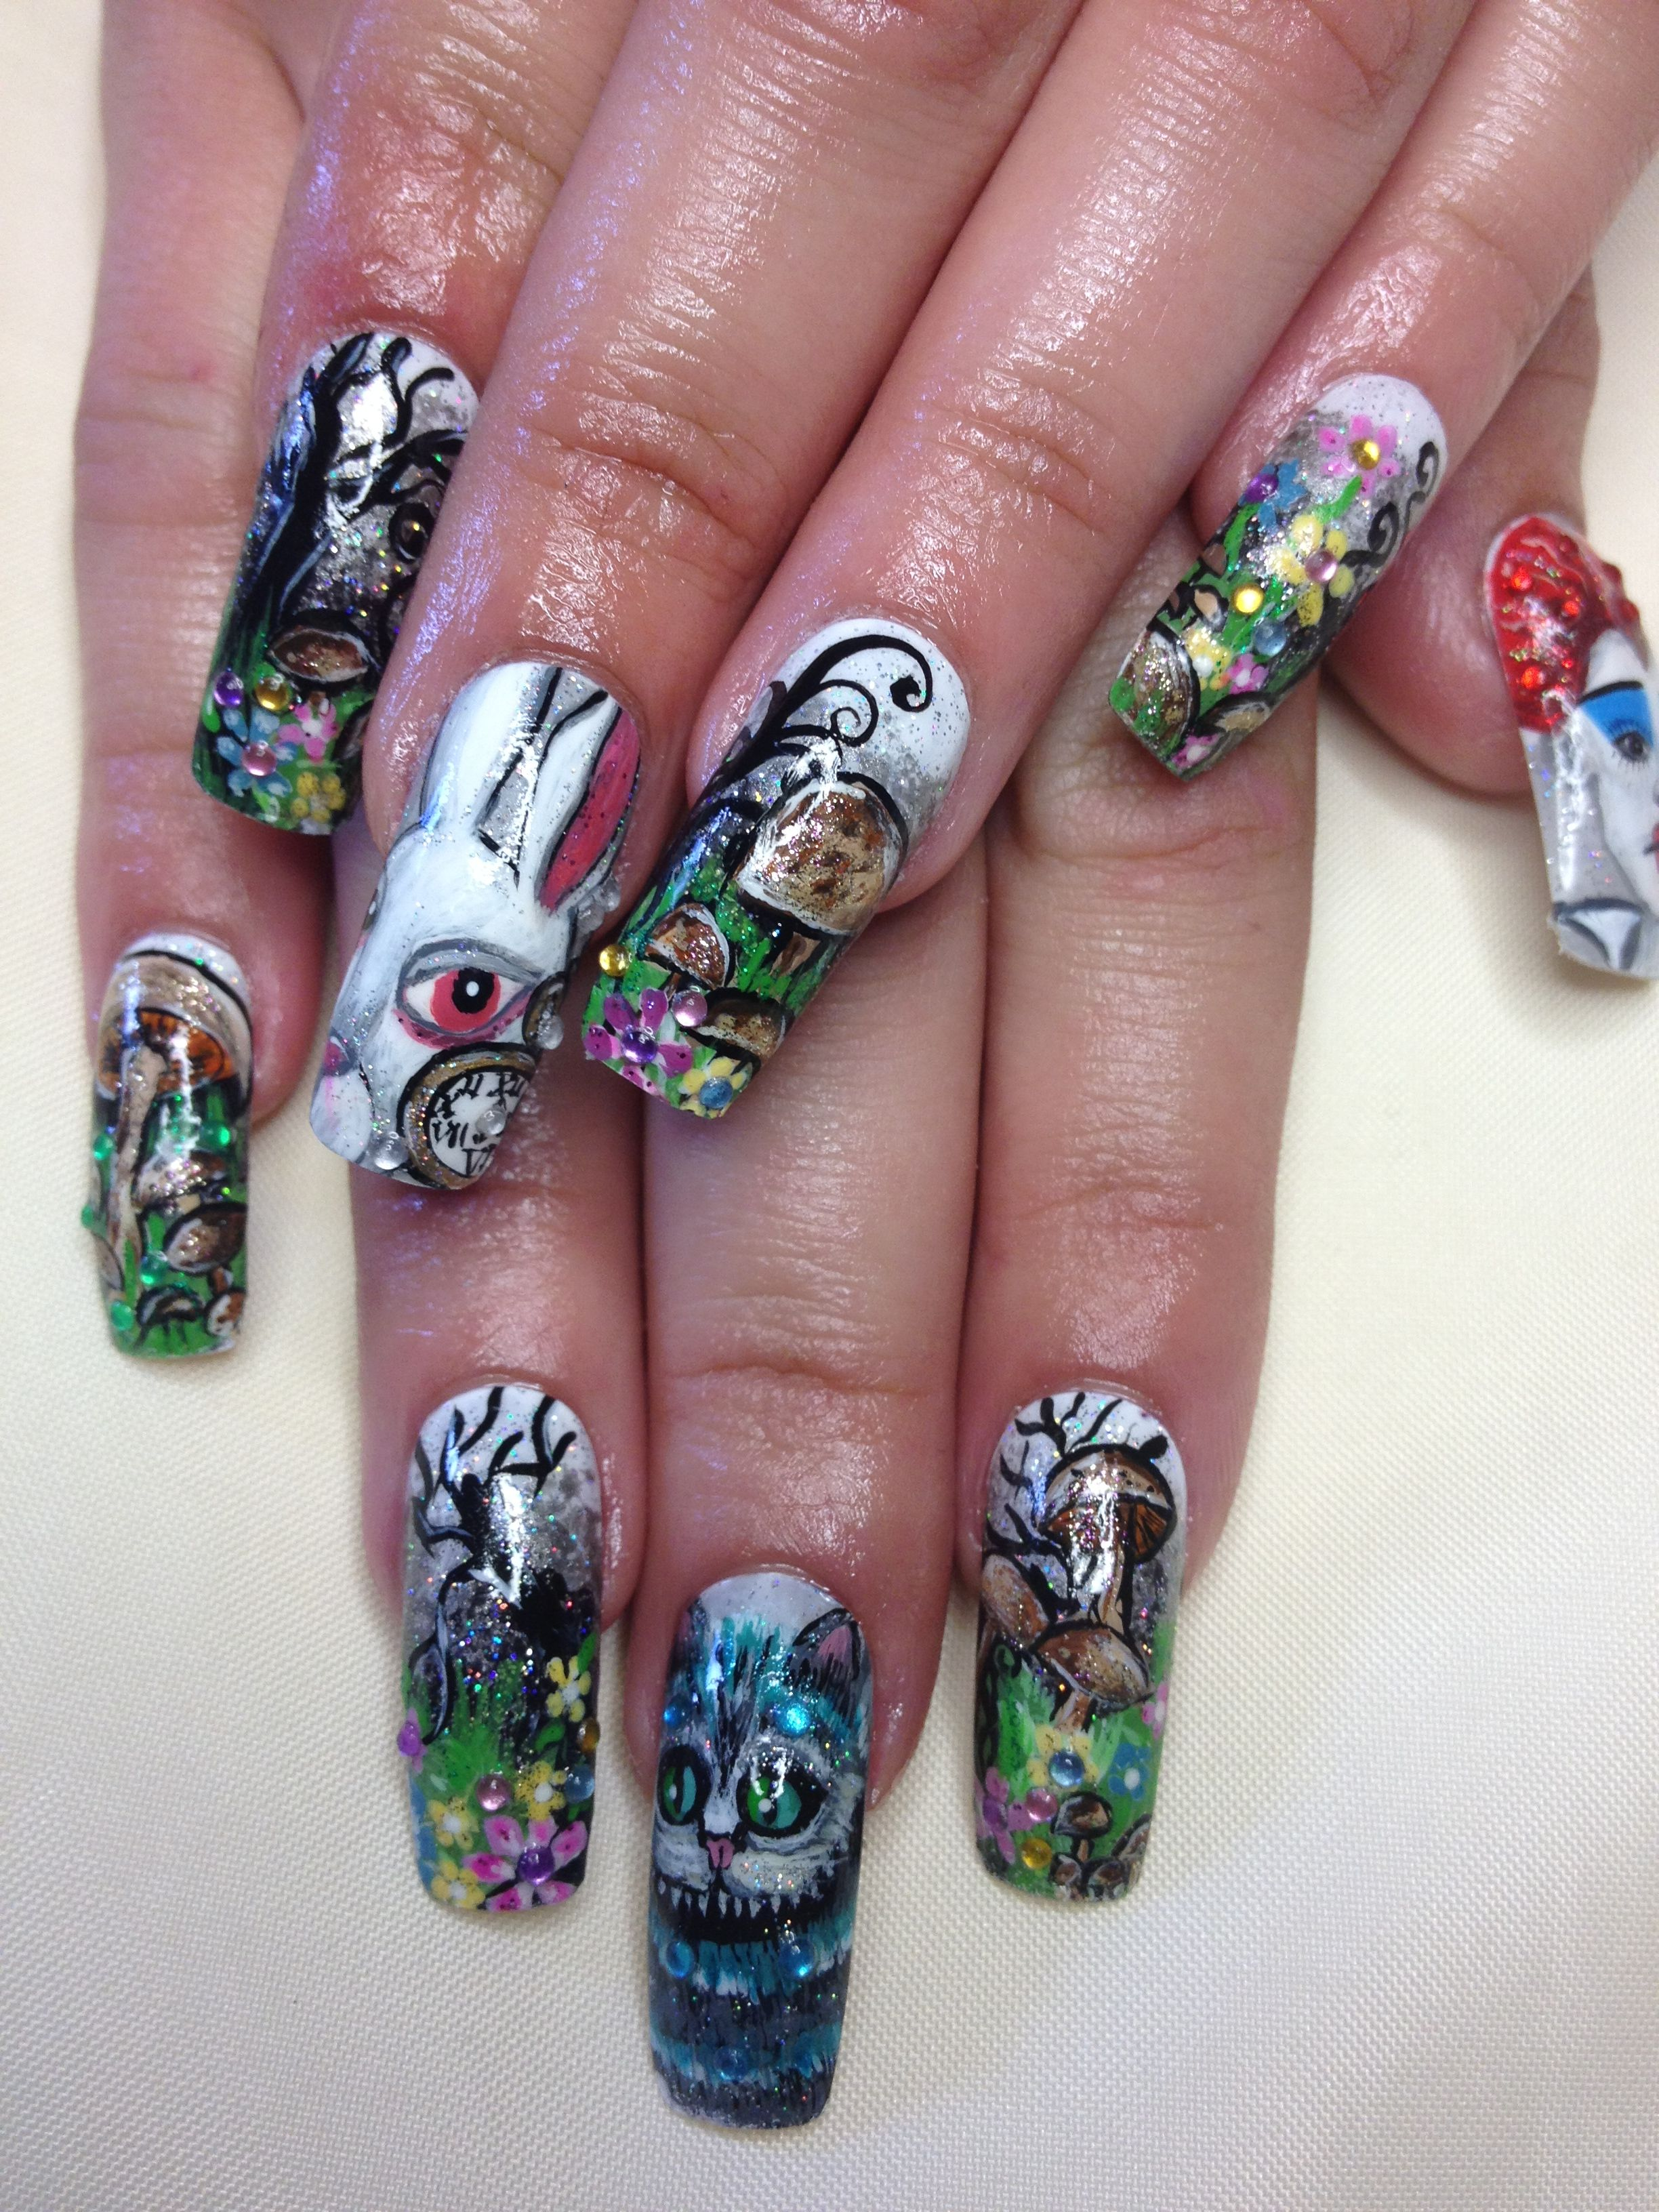 Summer nail designs 2013 nail art check out these cool summer nail designs 2013 nail art check out these cool nails prinsesfo Image collections